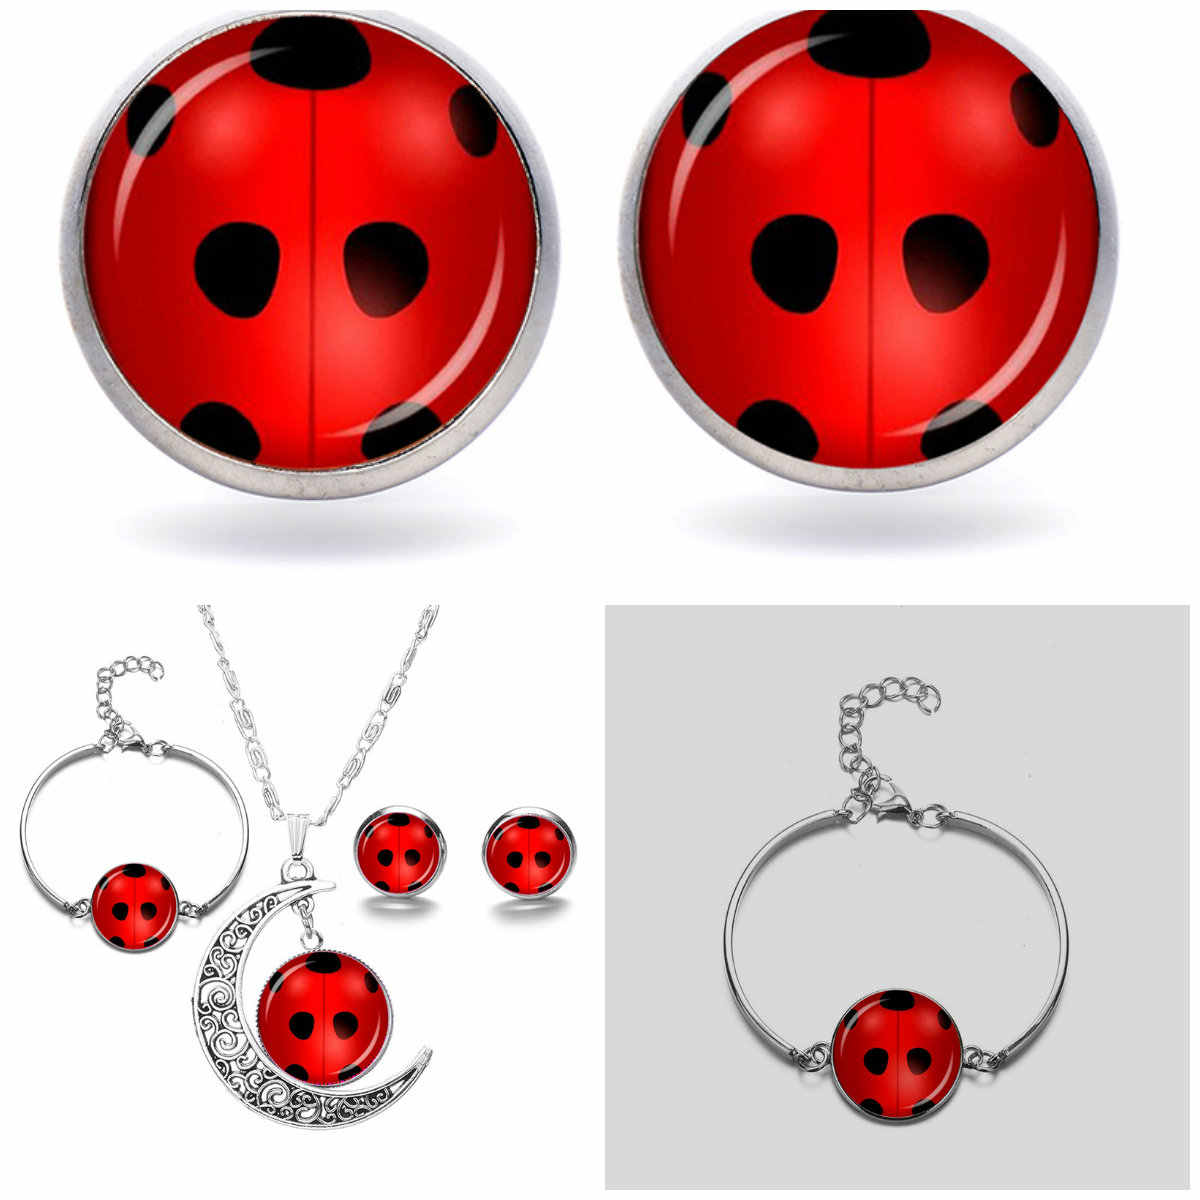 1 Set Red Ladybug Anting-Anting Kalung Gelang Perhiasan Set Warna Perak Fashion Round Pesona Pesta Kaca Permata Liontin